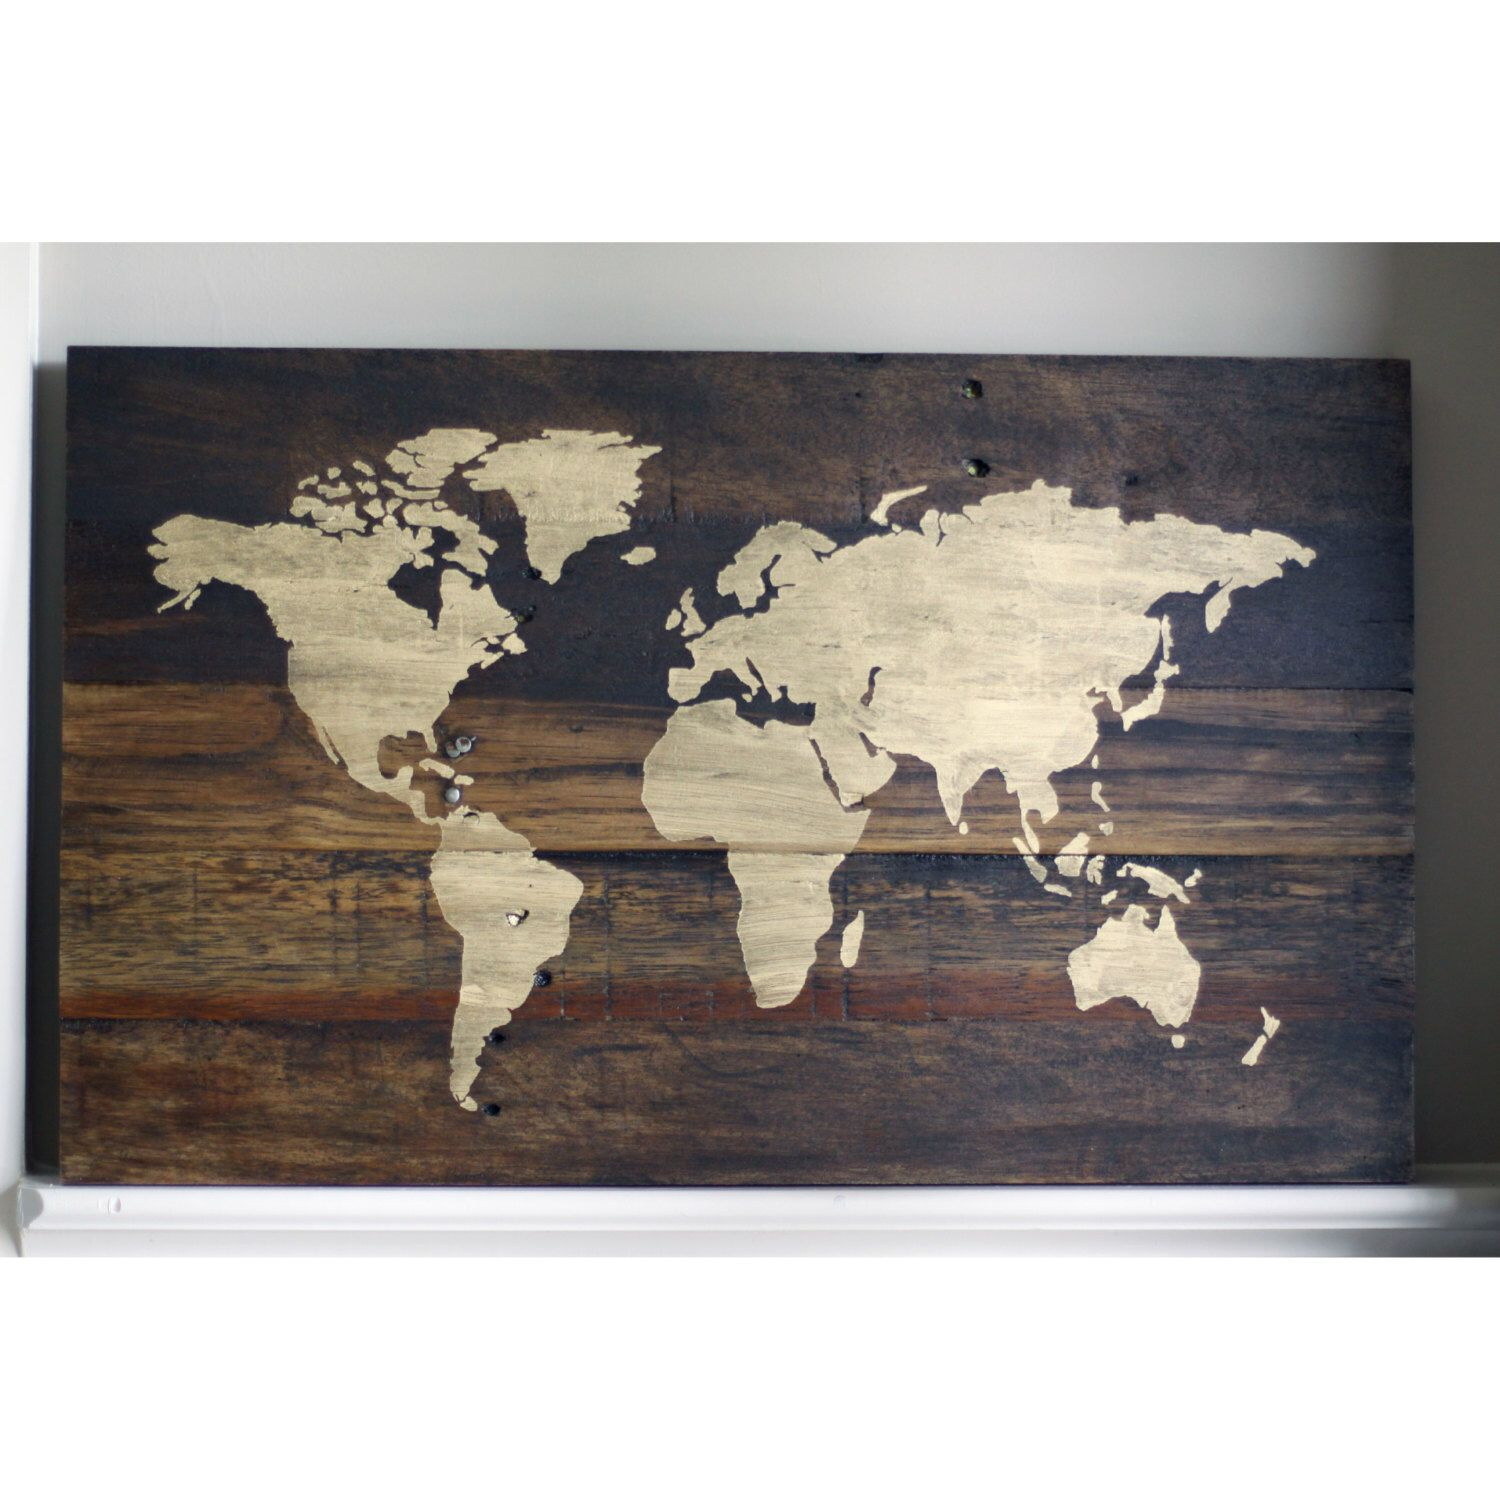 Rustic world map wood sign with upgrade by hammerandlaceinc on etsy rustic world map wood sign with upgrade by hammerandlaceinc on etsy httpswww gumiabroncs Choice Image